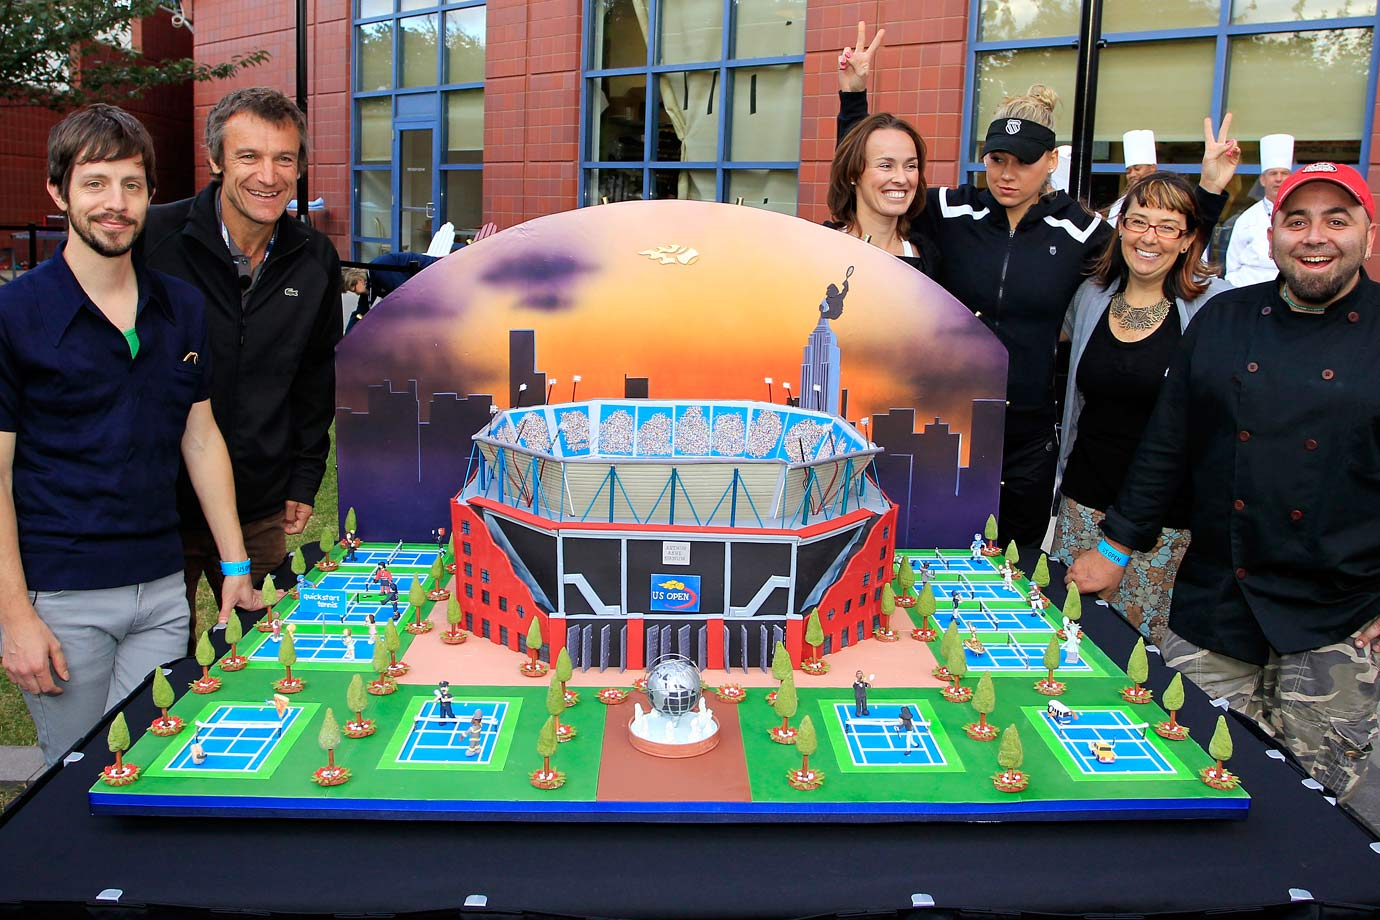 Anna Kournikova and Martina Hingis pose with the bakers who made a replica of the USTA Billie Jean National Tennis Center, on display outside the real center on Sept. 9, 2010.